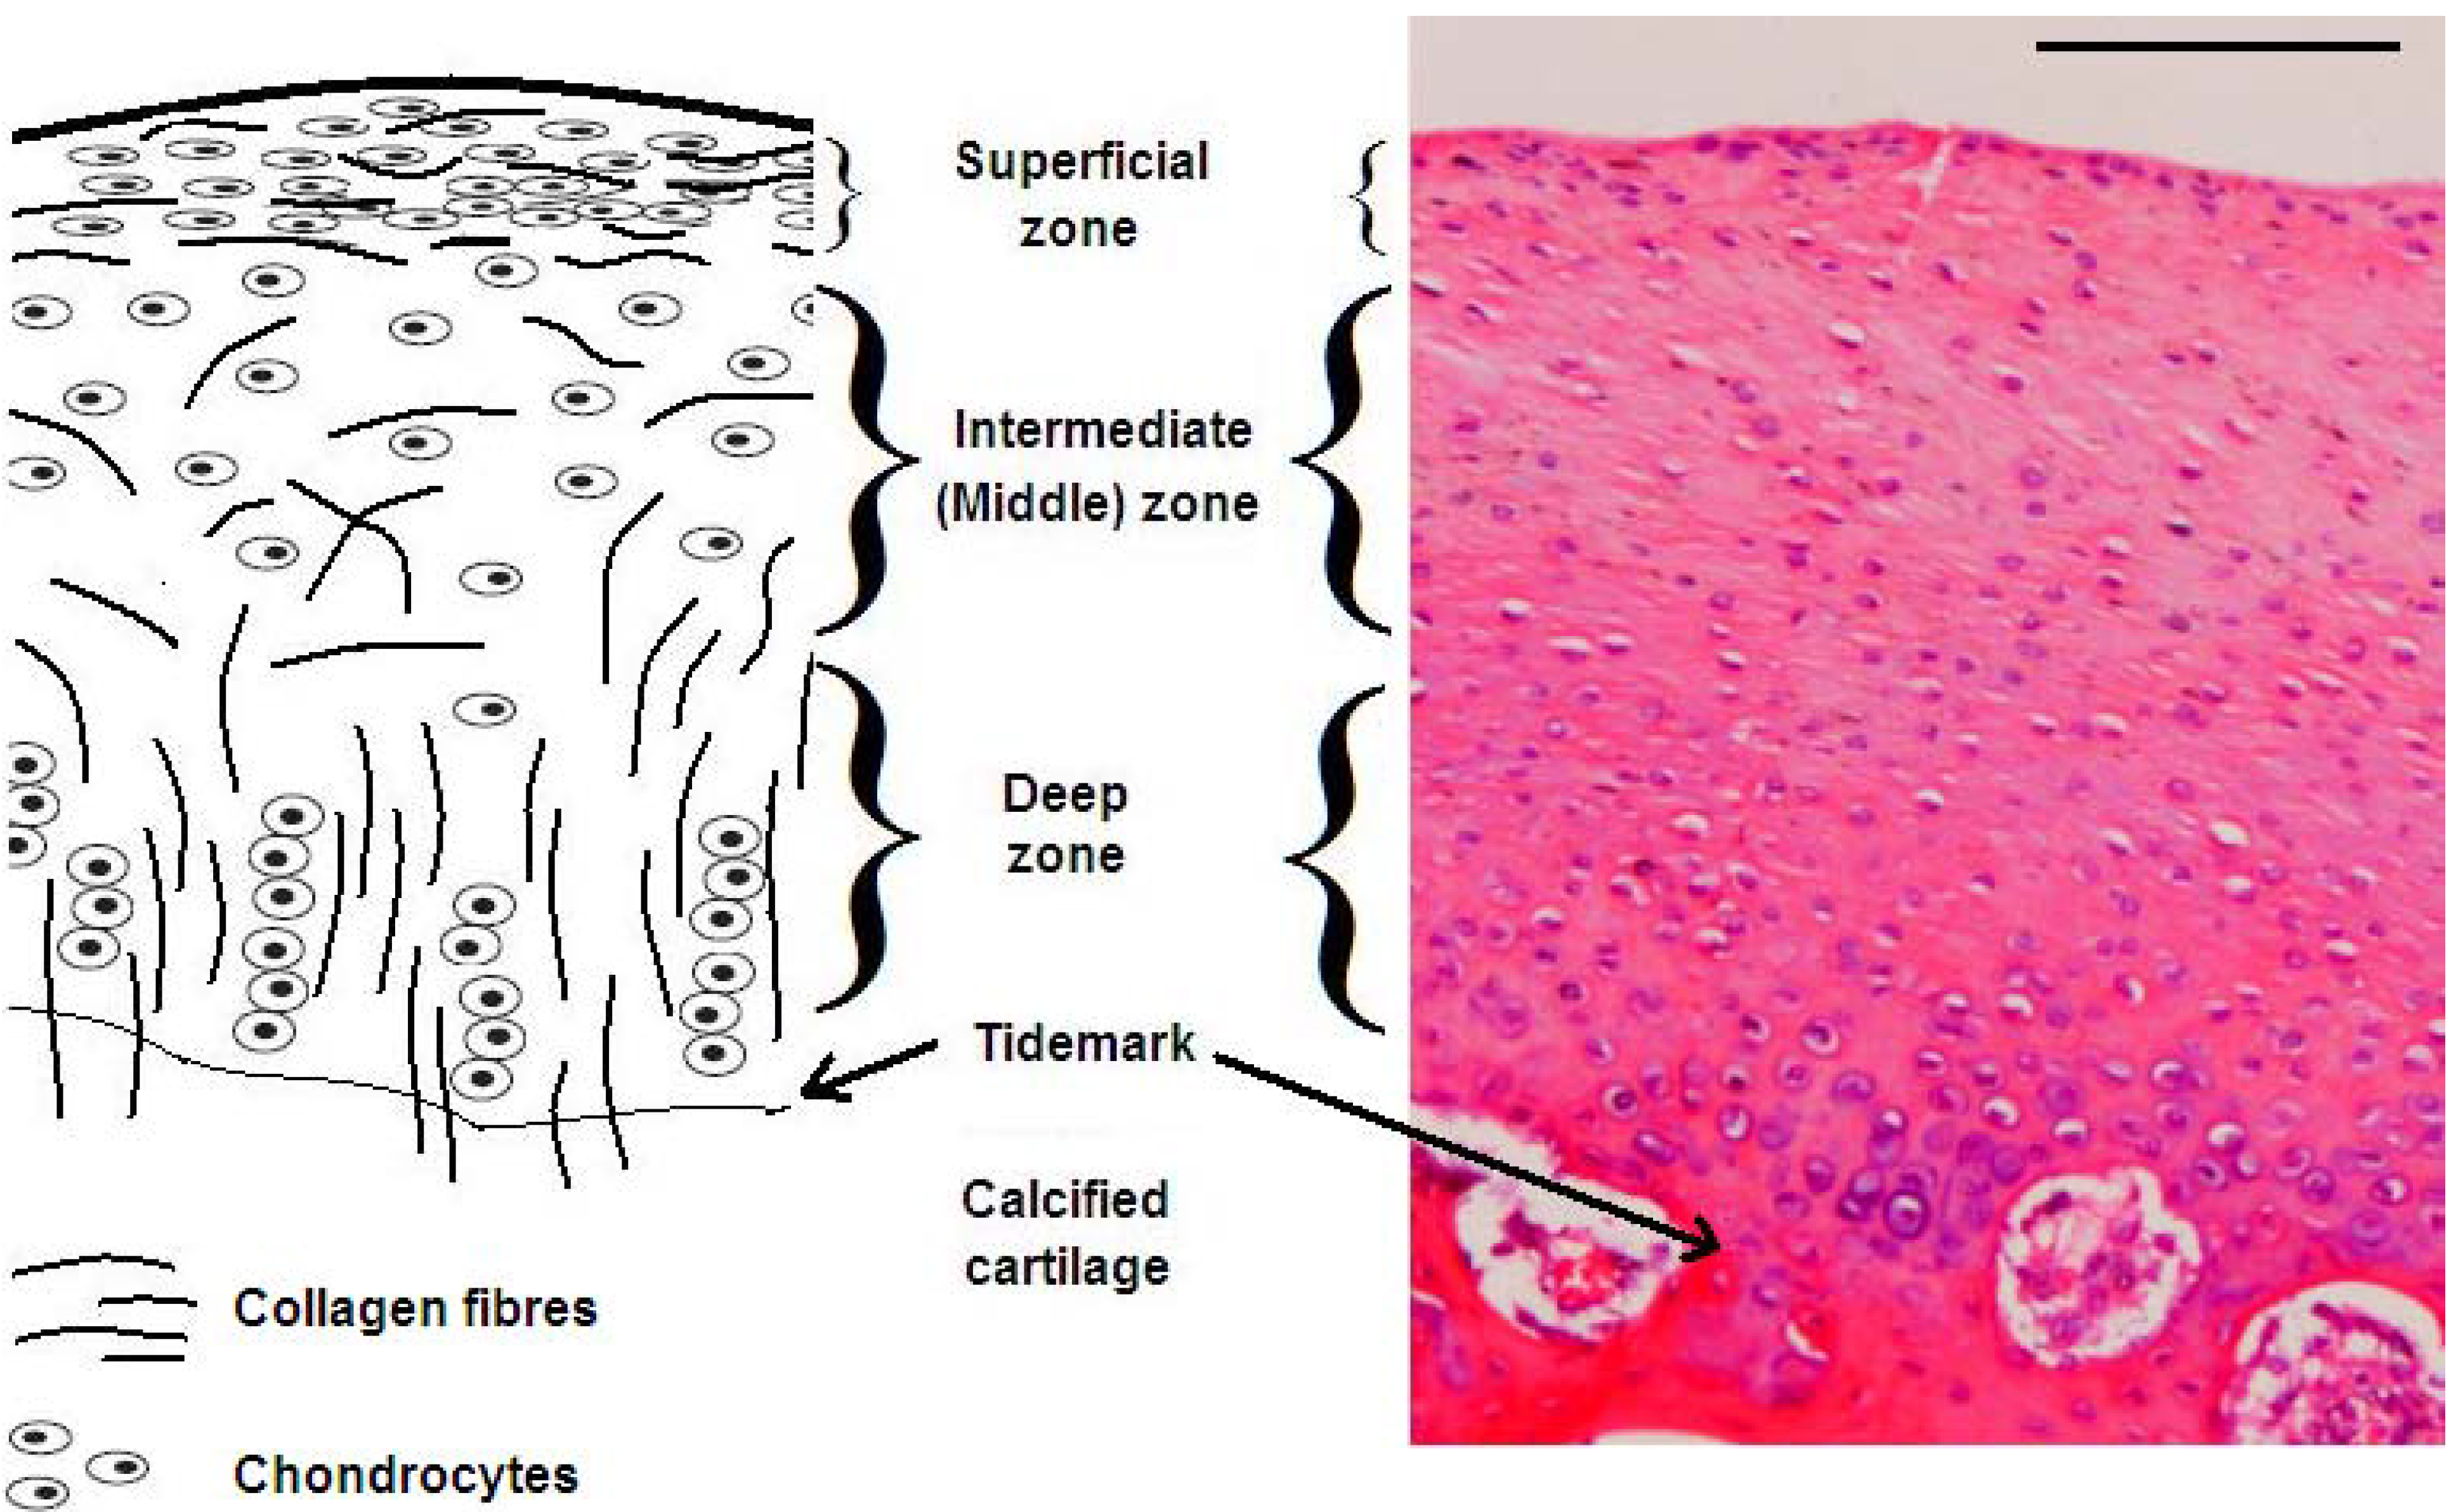 collagen supplements essay   top secret🔥   ☀☀☀ advanced dermatology collagen supplements ☀☀☀ how eating right and the right exercise will better your health the fat burning kitchen - foods that burn fat, foods that make you fat advanced dermatology collagen supplements,get yourself ready for the summer, easy as 1-2-3.